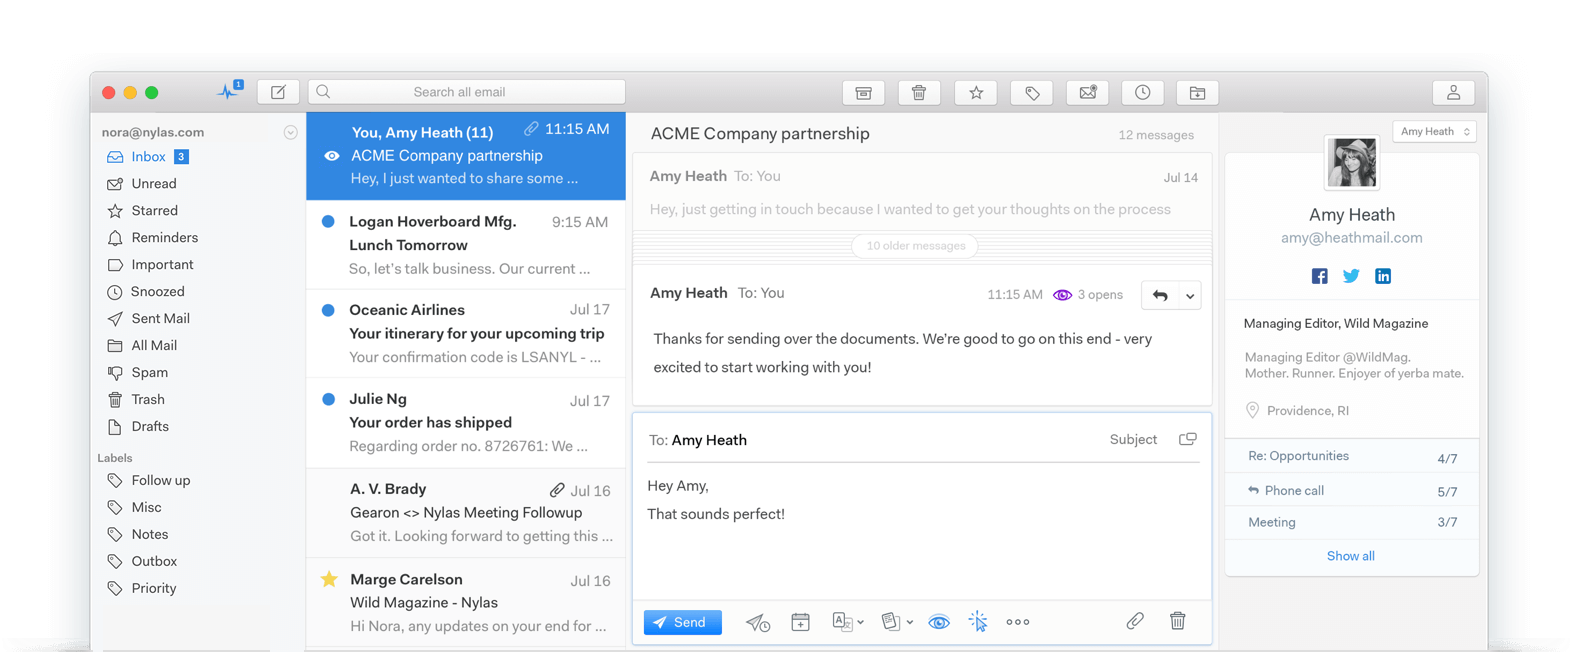 Introducing Mailspring: A new Mail Client designed for macOS High Sierra Image